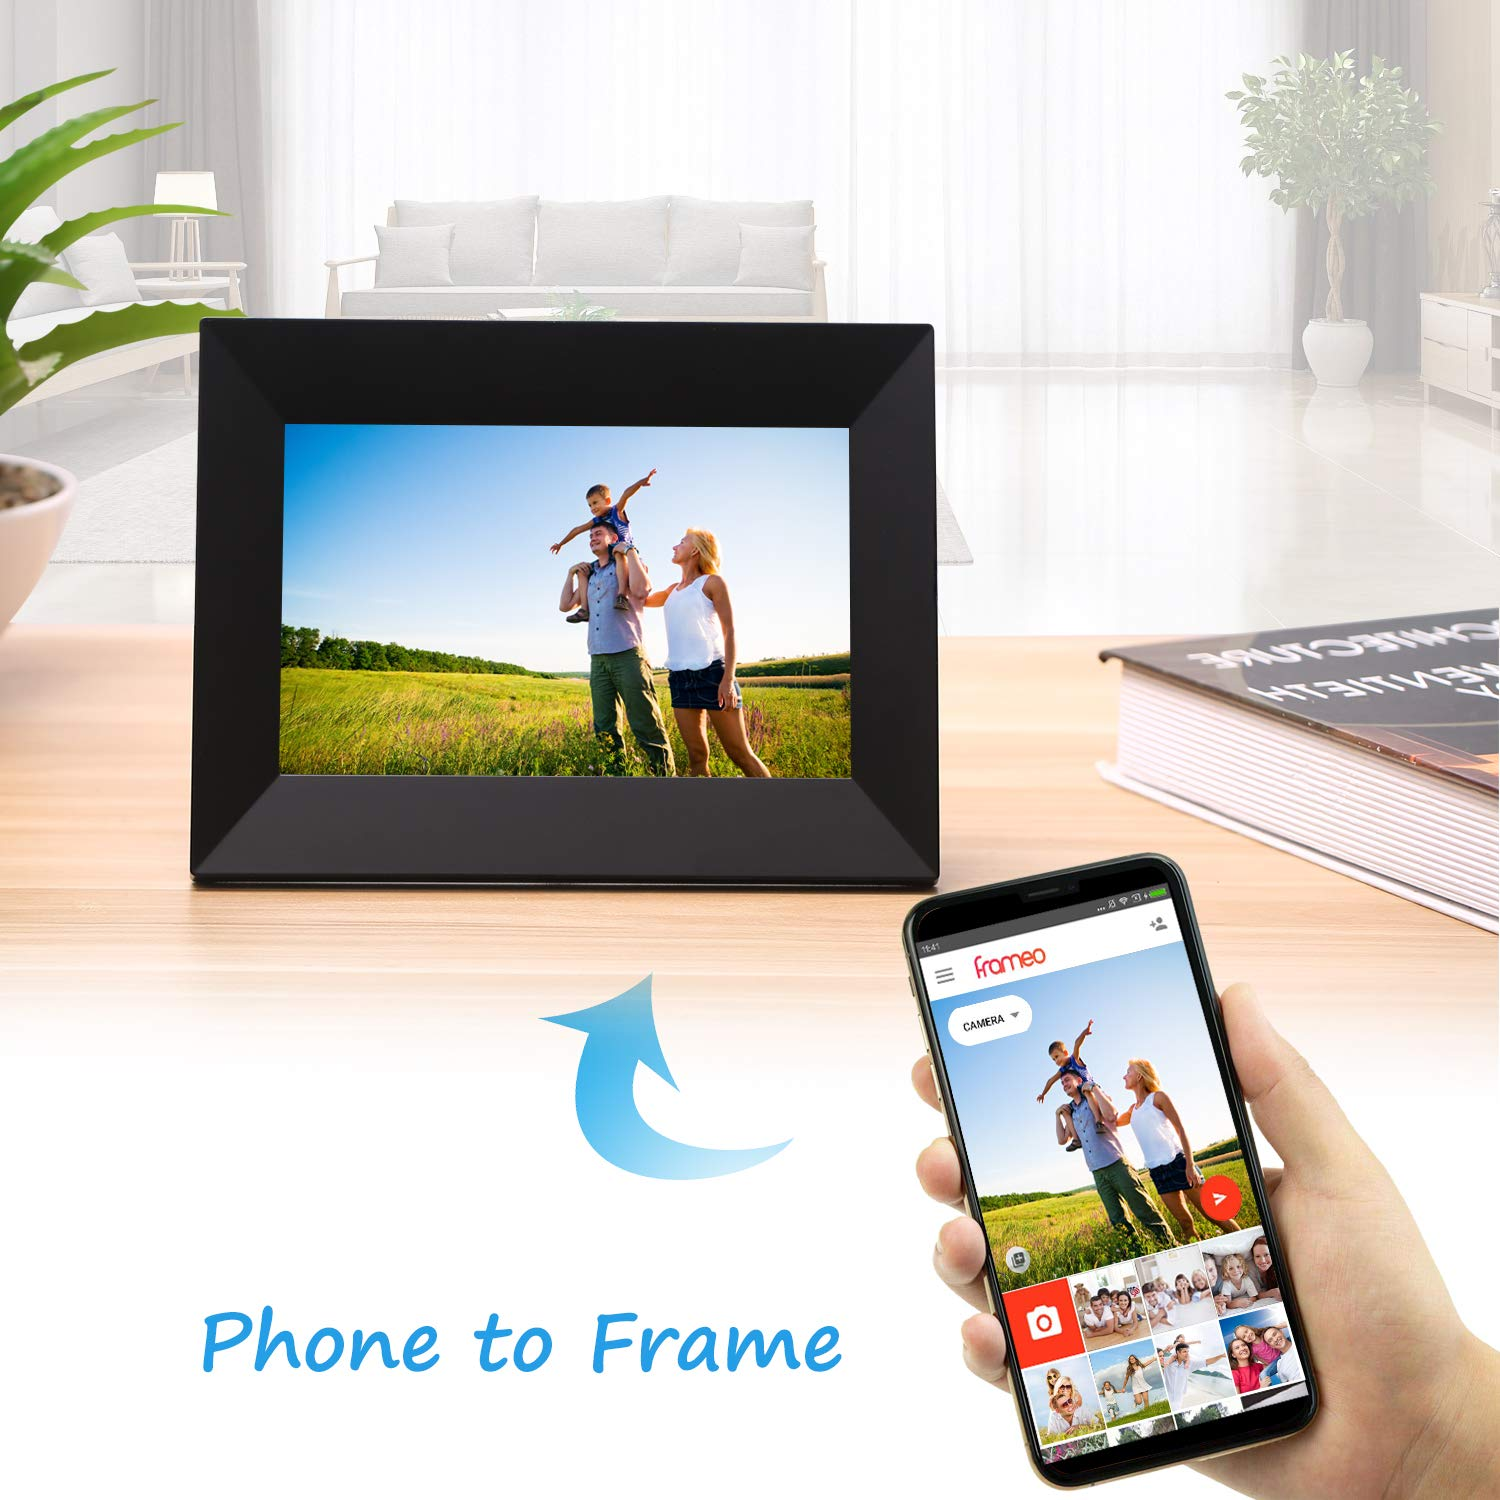 Dhwazz 8 Inch WiFi Digital Photo Frame, IPS Electronic Picture Frame with LCD Touch Screen, 8GB Internal Storage, Wall-Mountable, Display and Share Photos Instantly via Mobile APP by Dhwazz (Image #2)